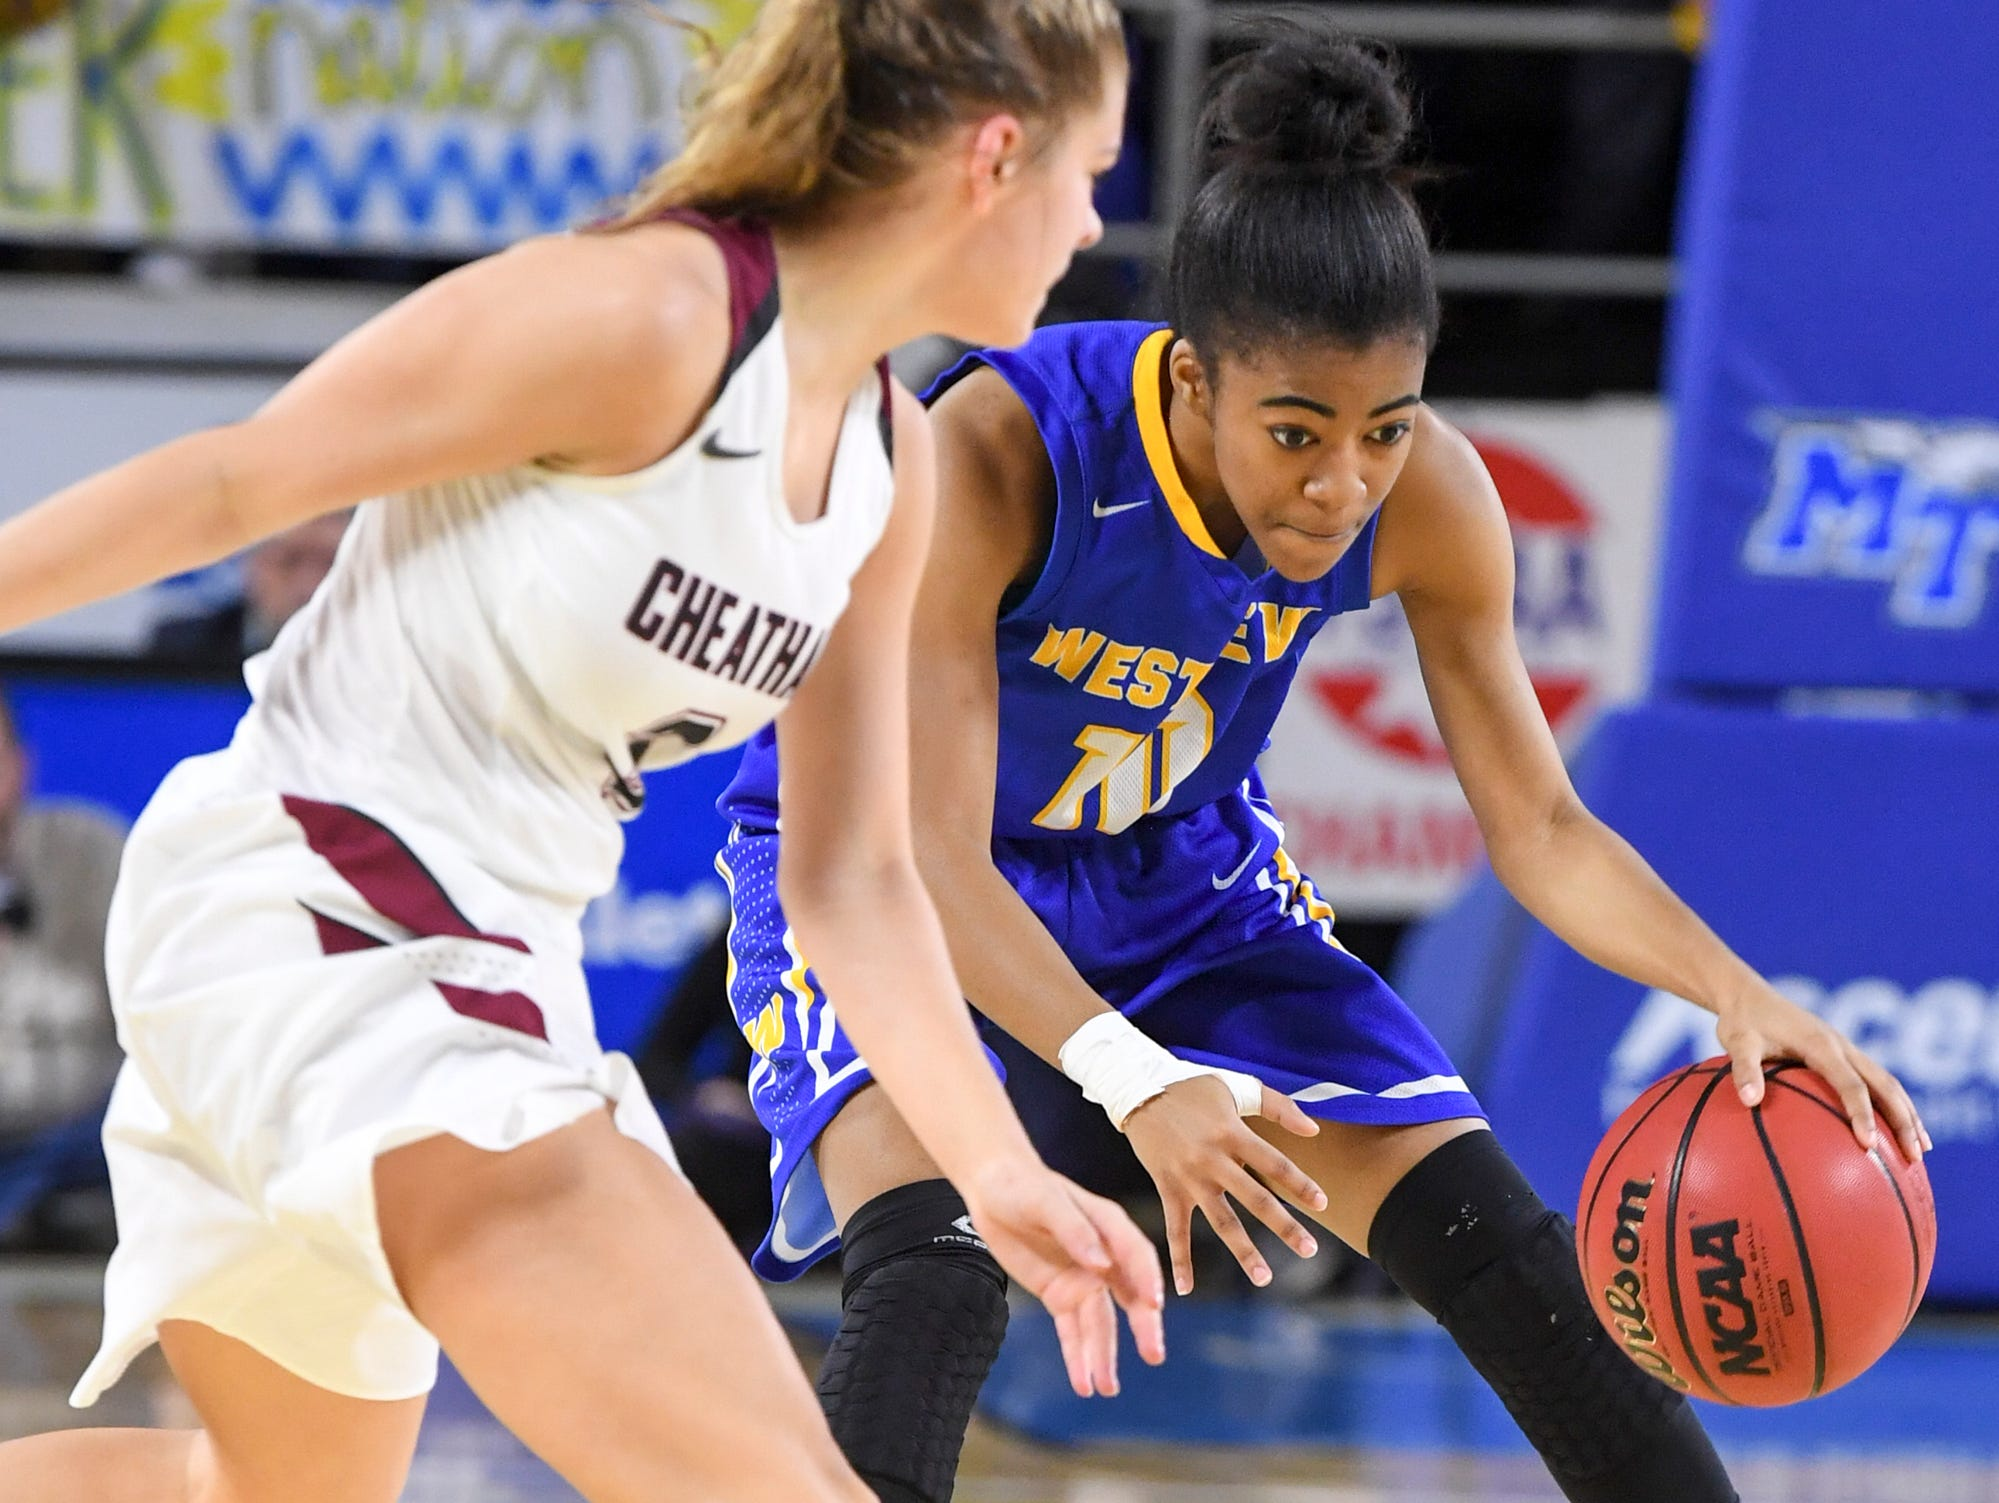 Westview's Zanasha Gadlen (10) crosses over Cheatham County's Emmy Nelson (3) during their Class AA championship game, Saturday, March 9, 2019, in Murfreesboro.